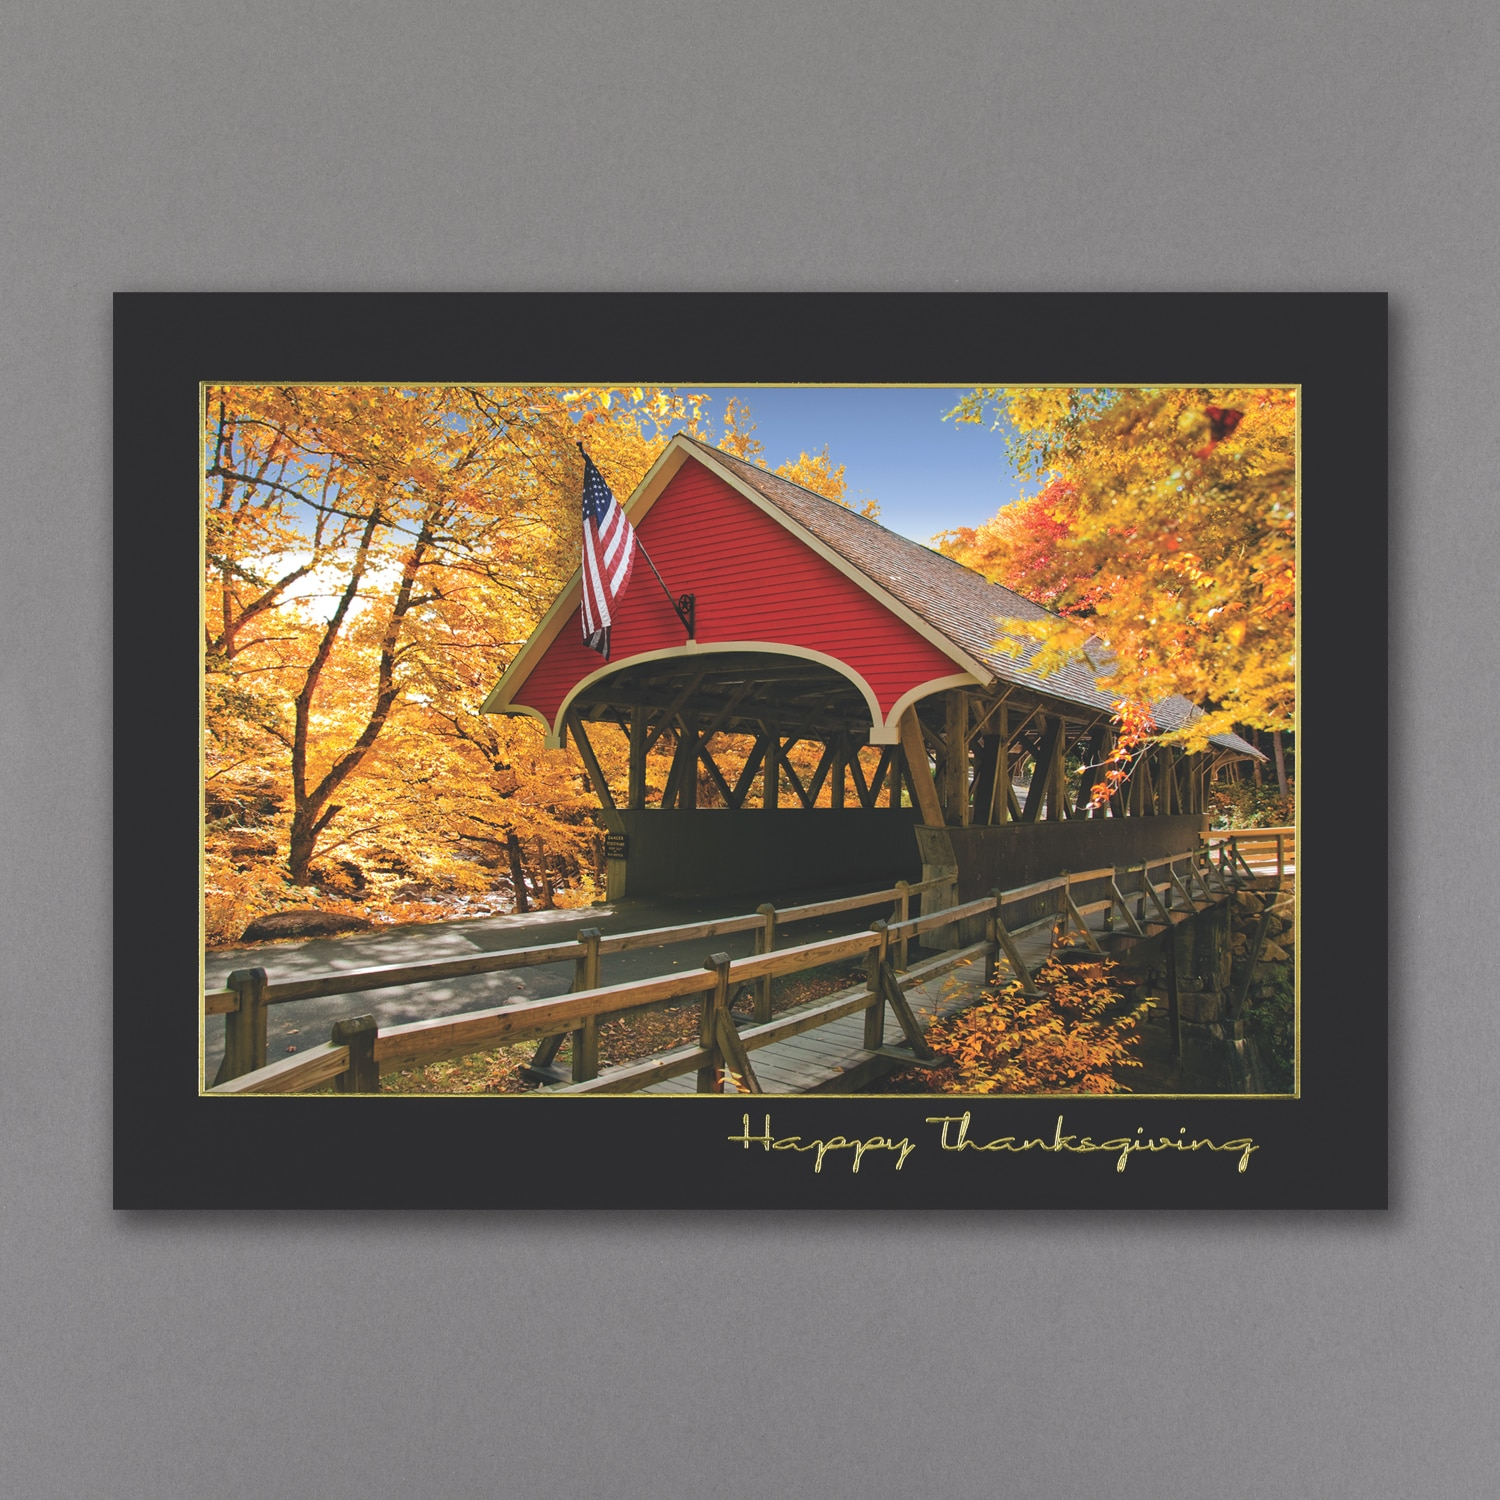 America The Beautiful Thanksgiving Card Thanksgiving Cards